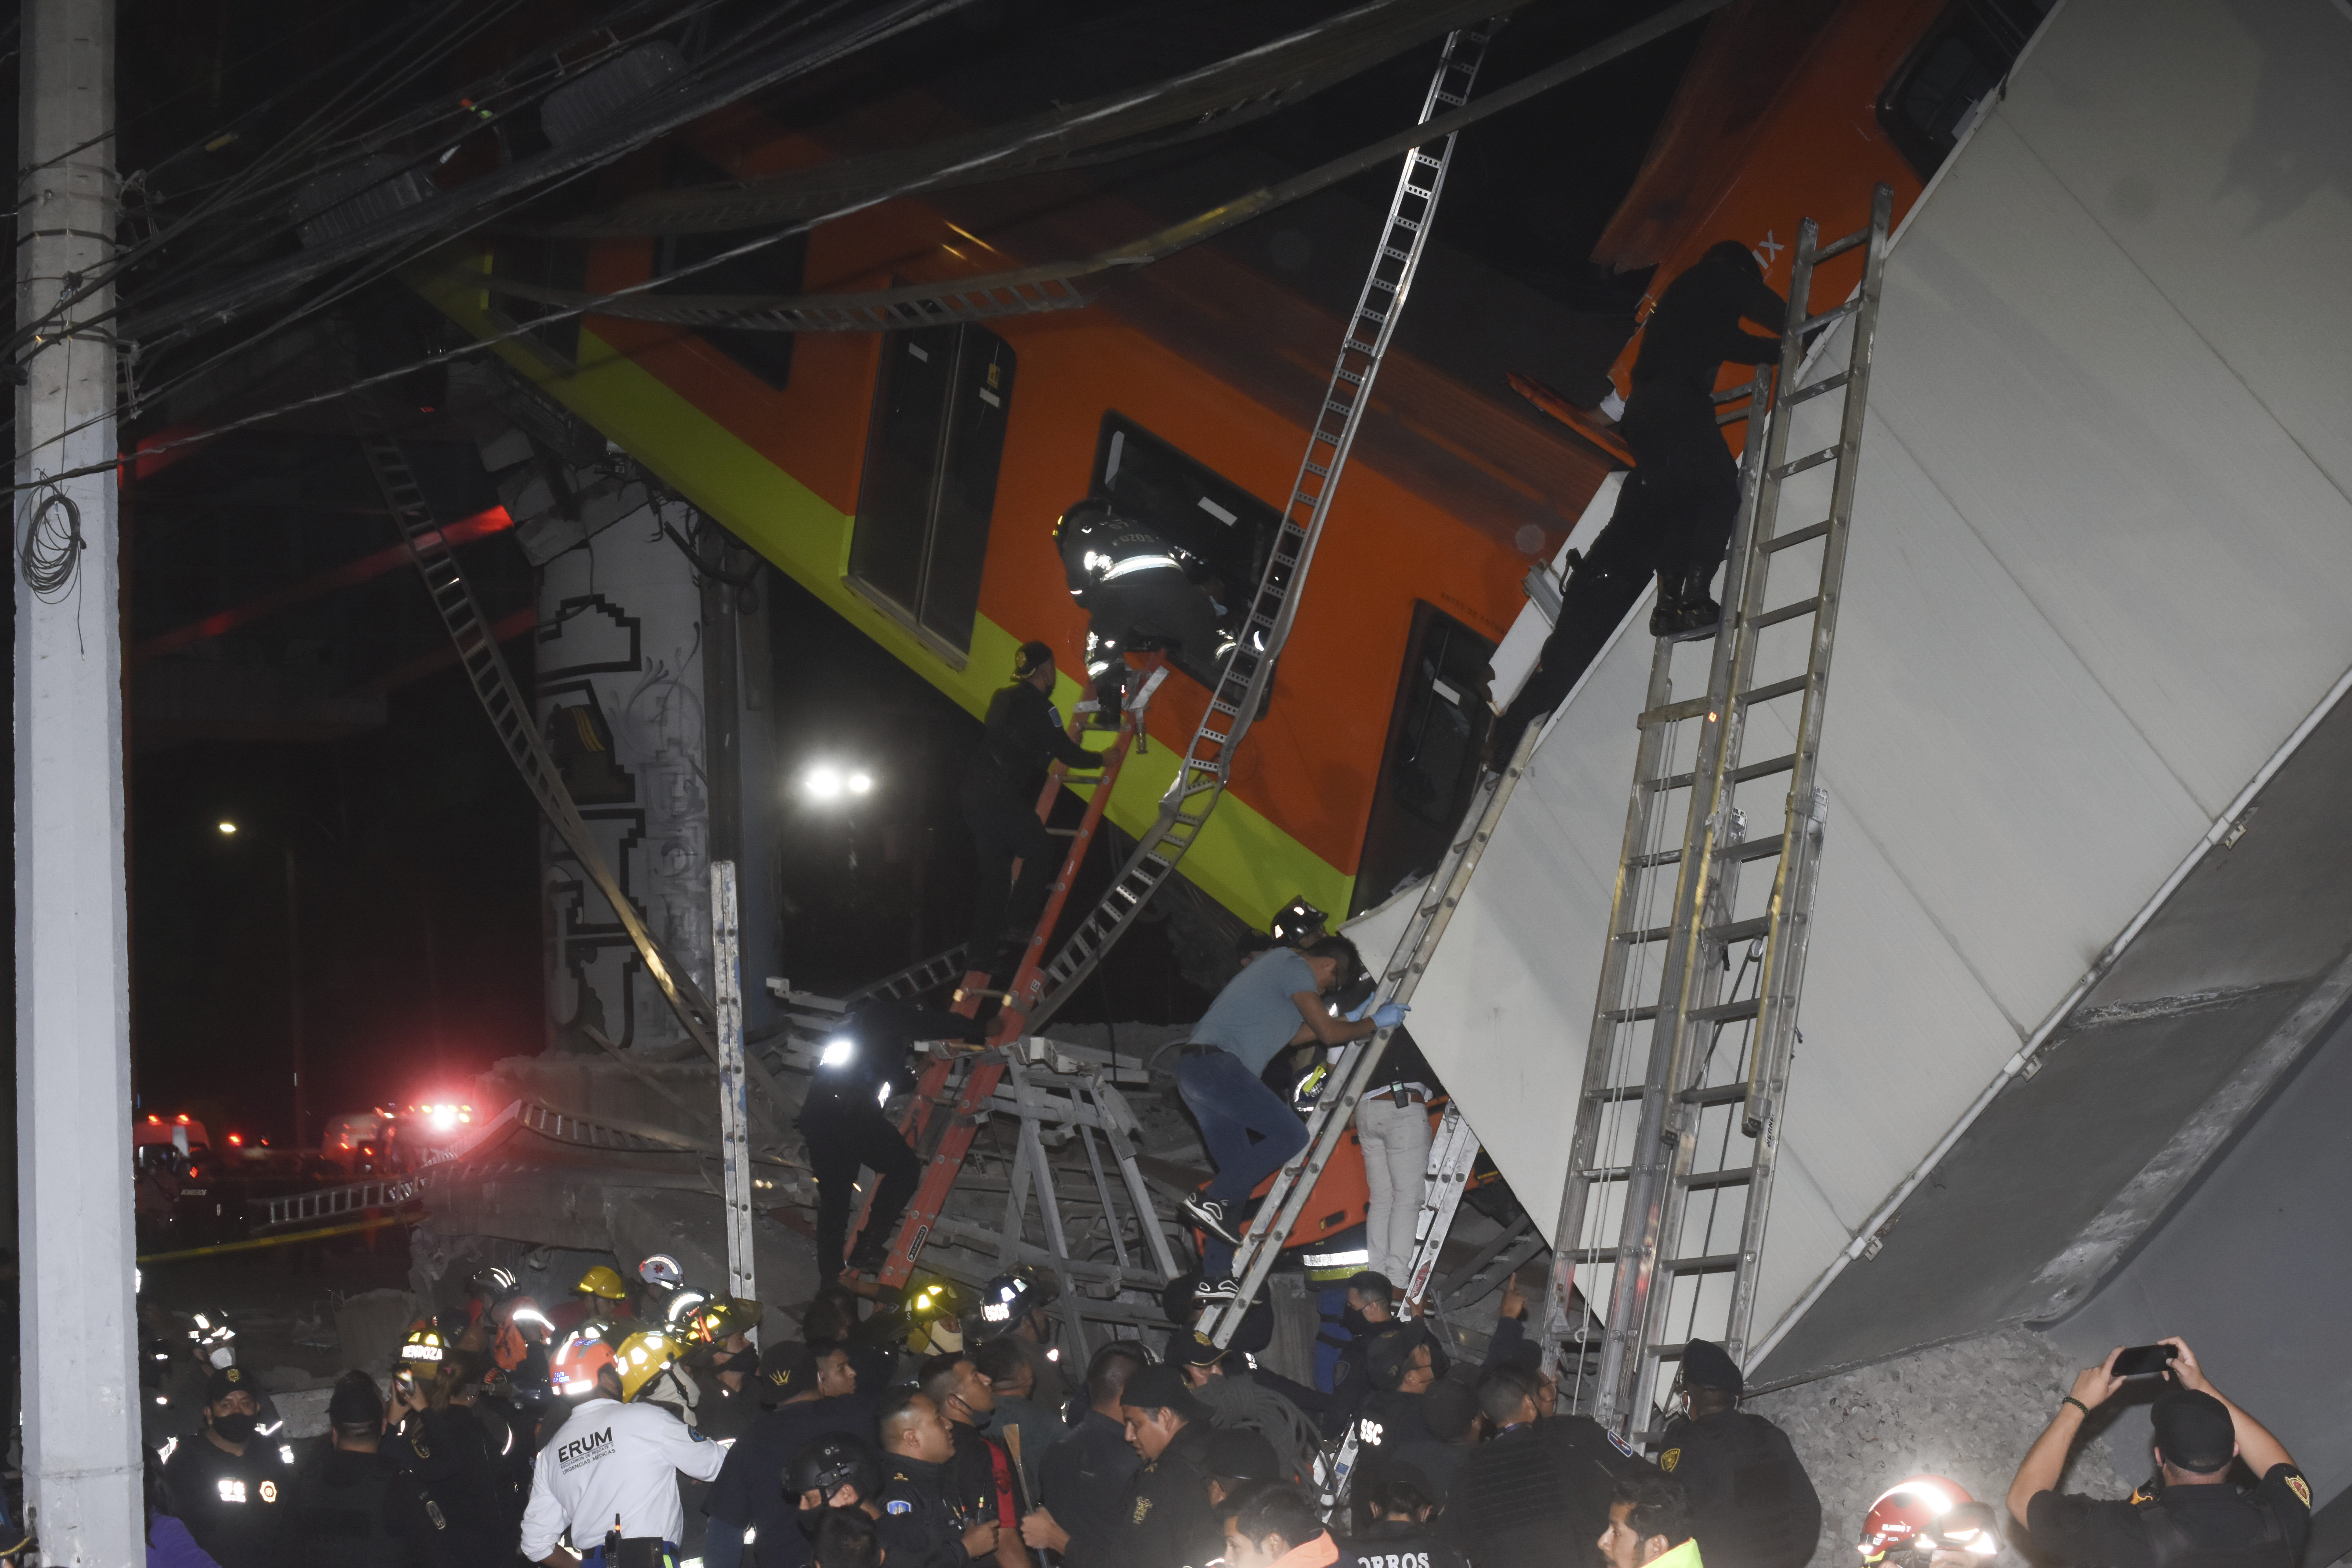 Mexico City fire fighters and rescue personnel work to recover victims from a subway car that fell after a section of Line 12 of the subway collapsed in Mexico City, Monday, May 3, 2021.